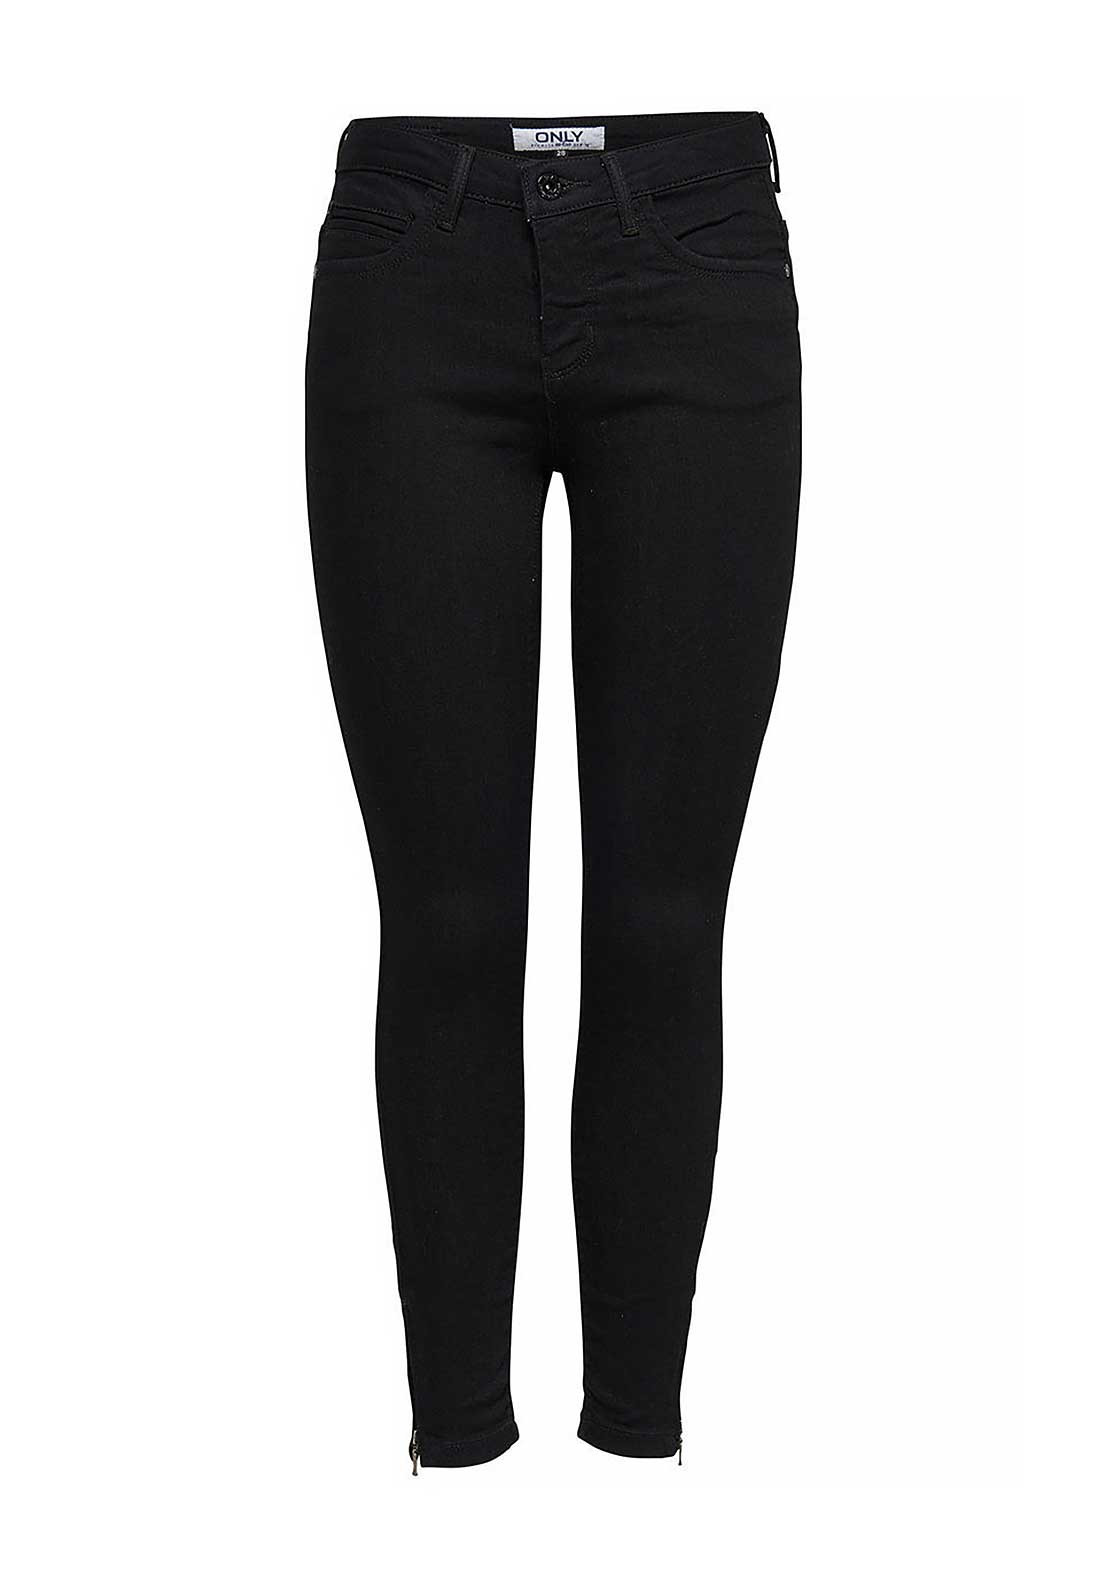 Only Kendell Zip Cuff Skinny Jeans, Black